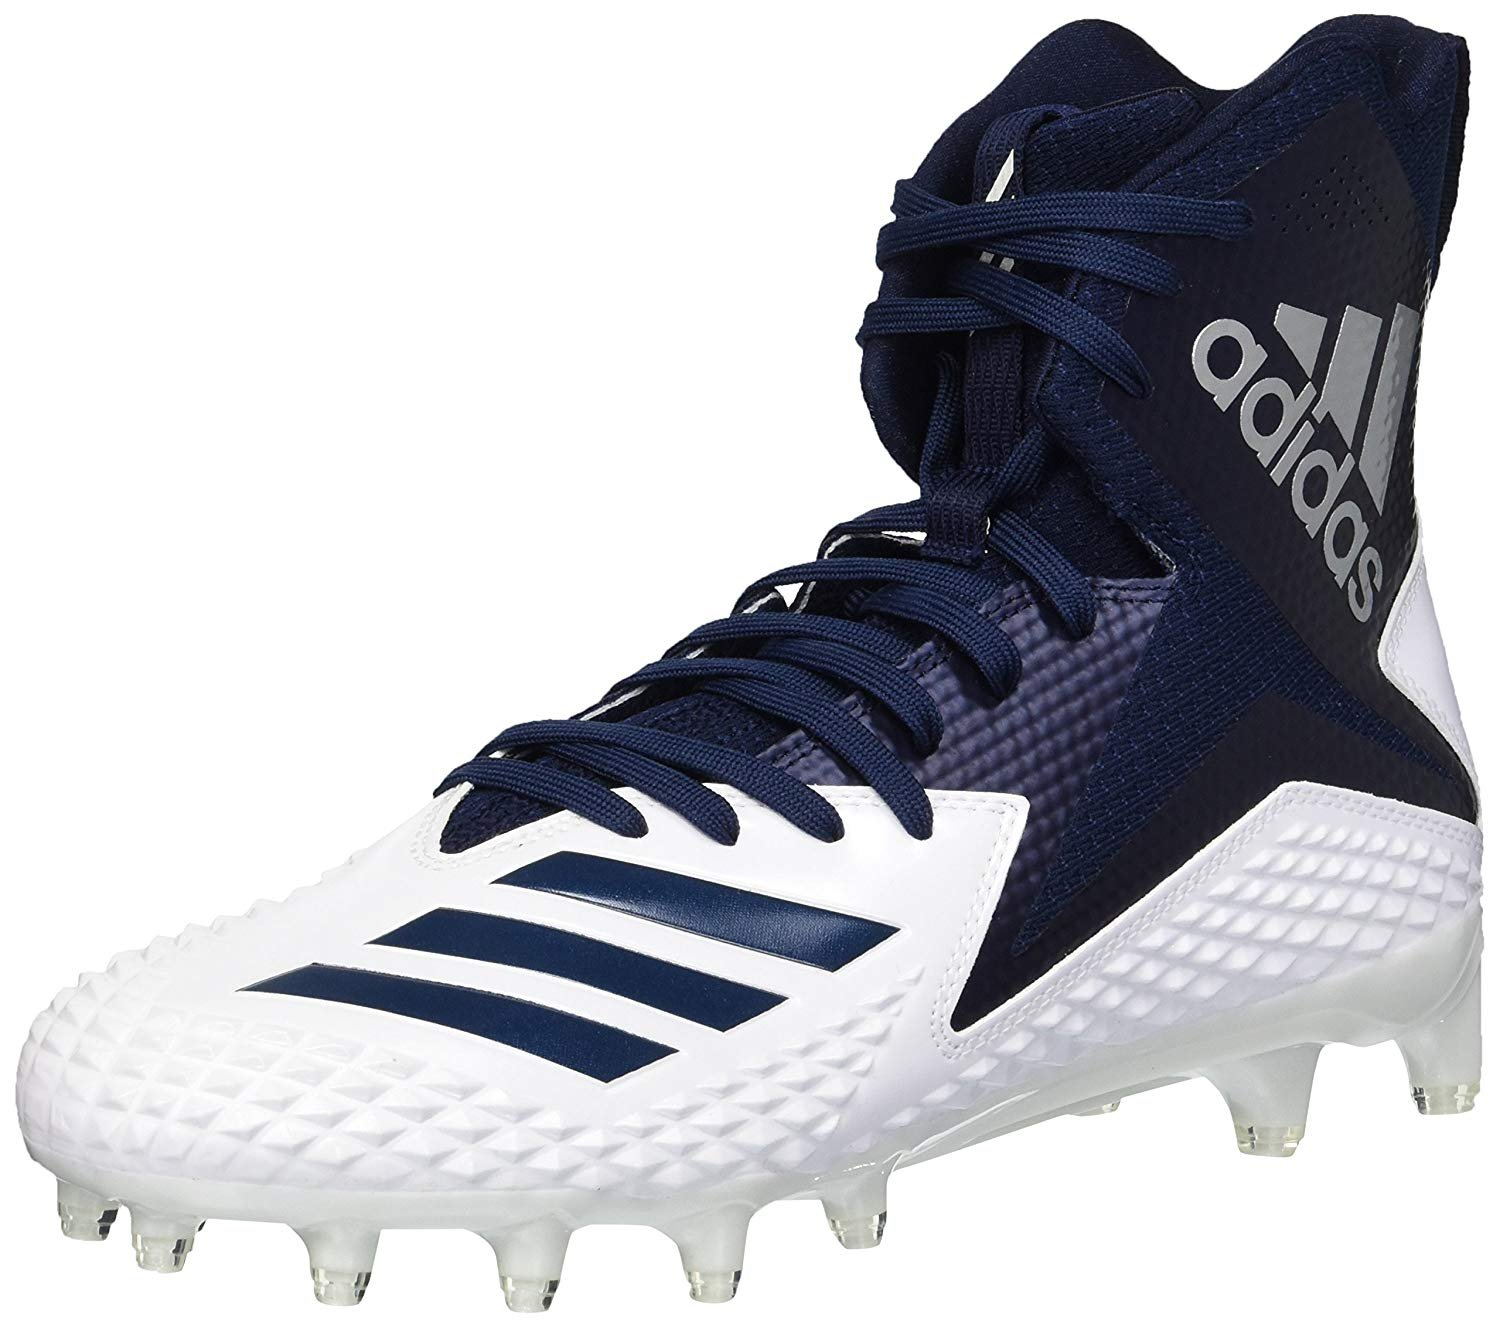 adidas Men's Freak X Carbon Mid Football Shoe, White/Collegiate Navy/Collegiate Navy, 6.5 M US by adidas